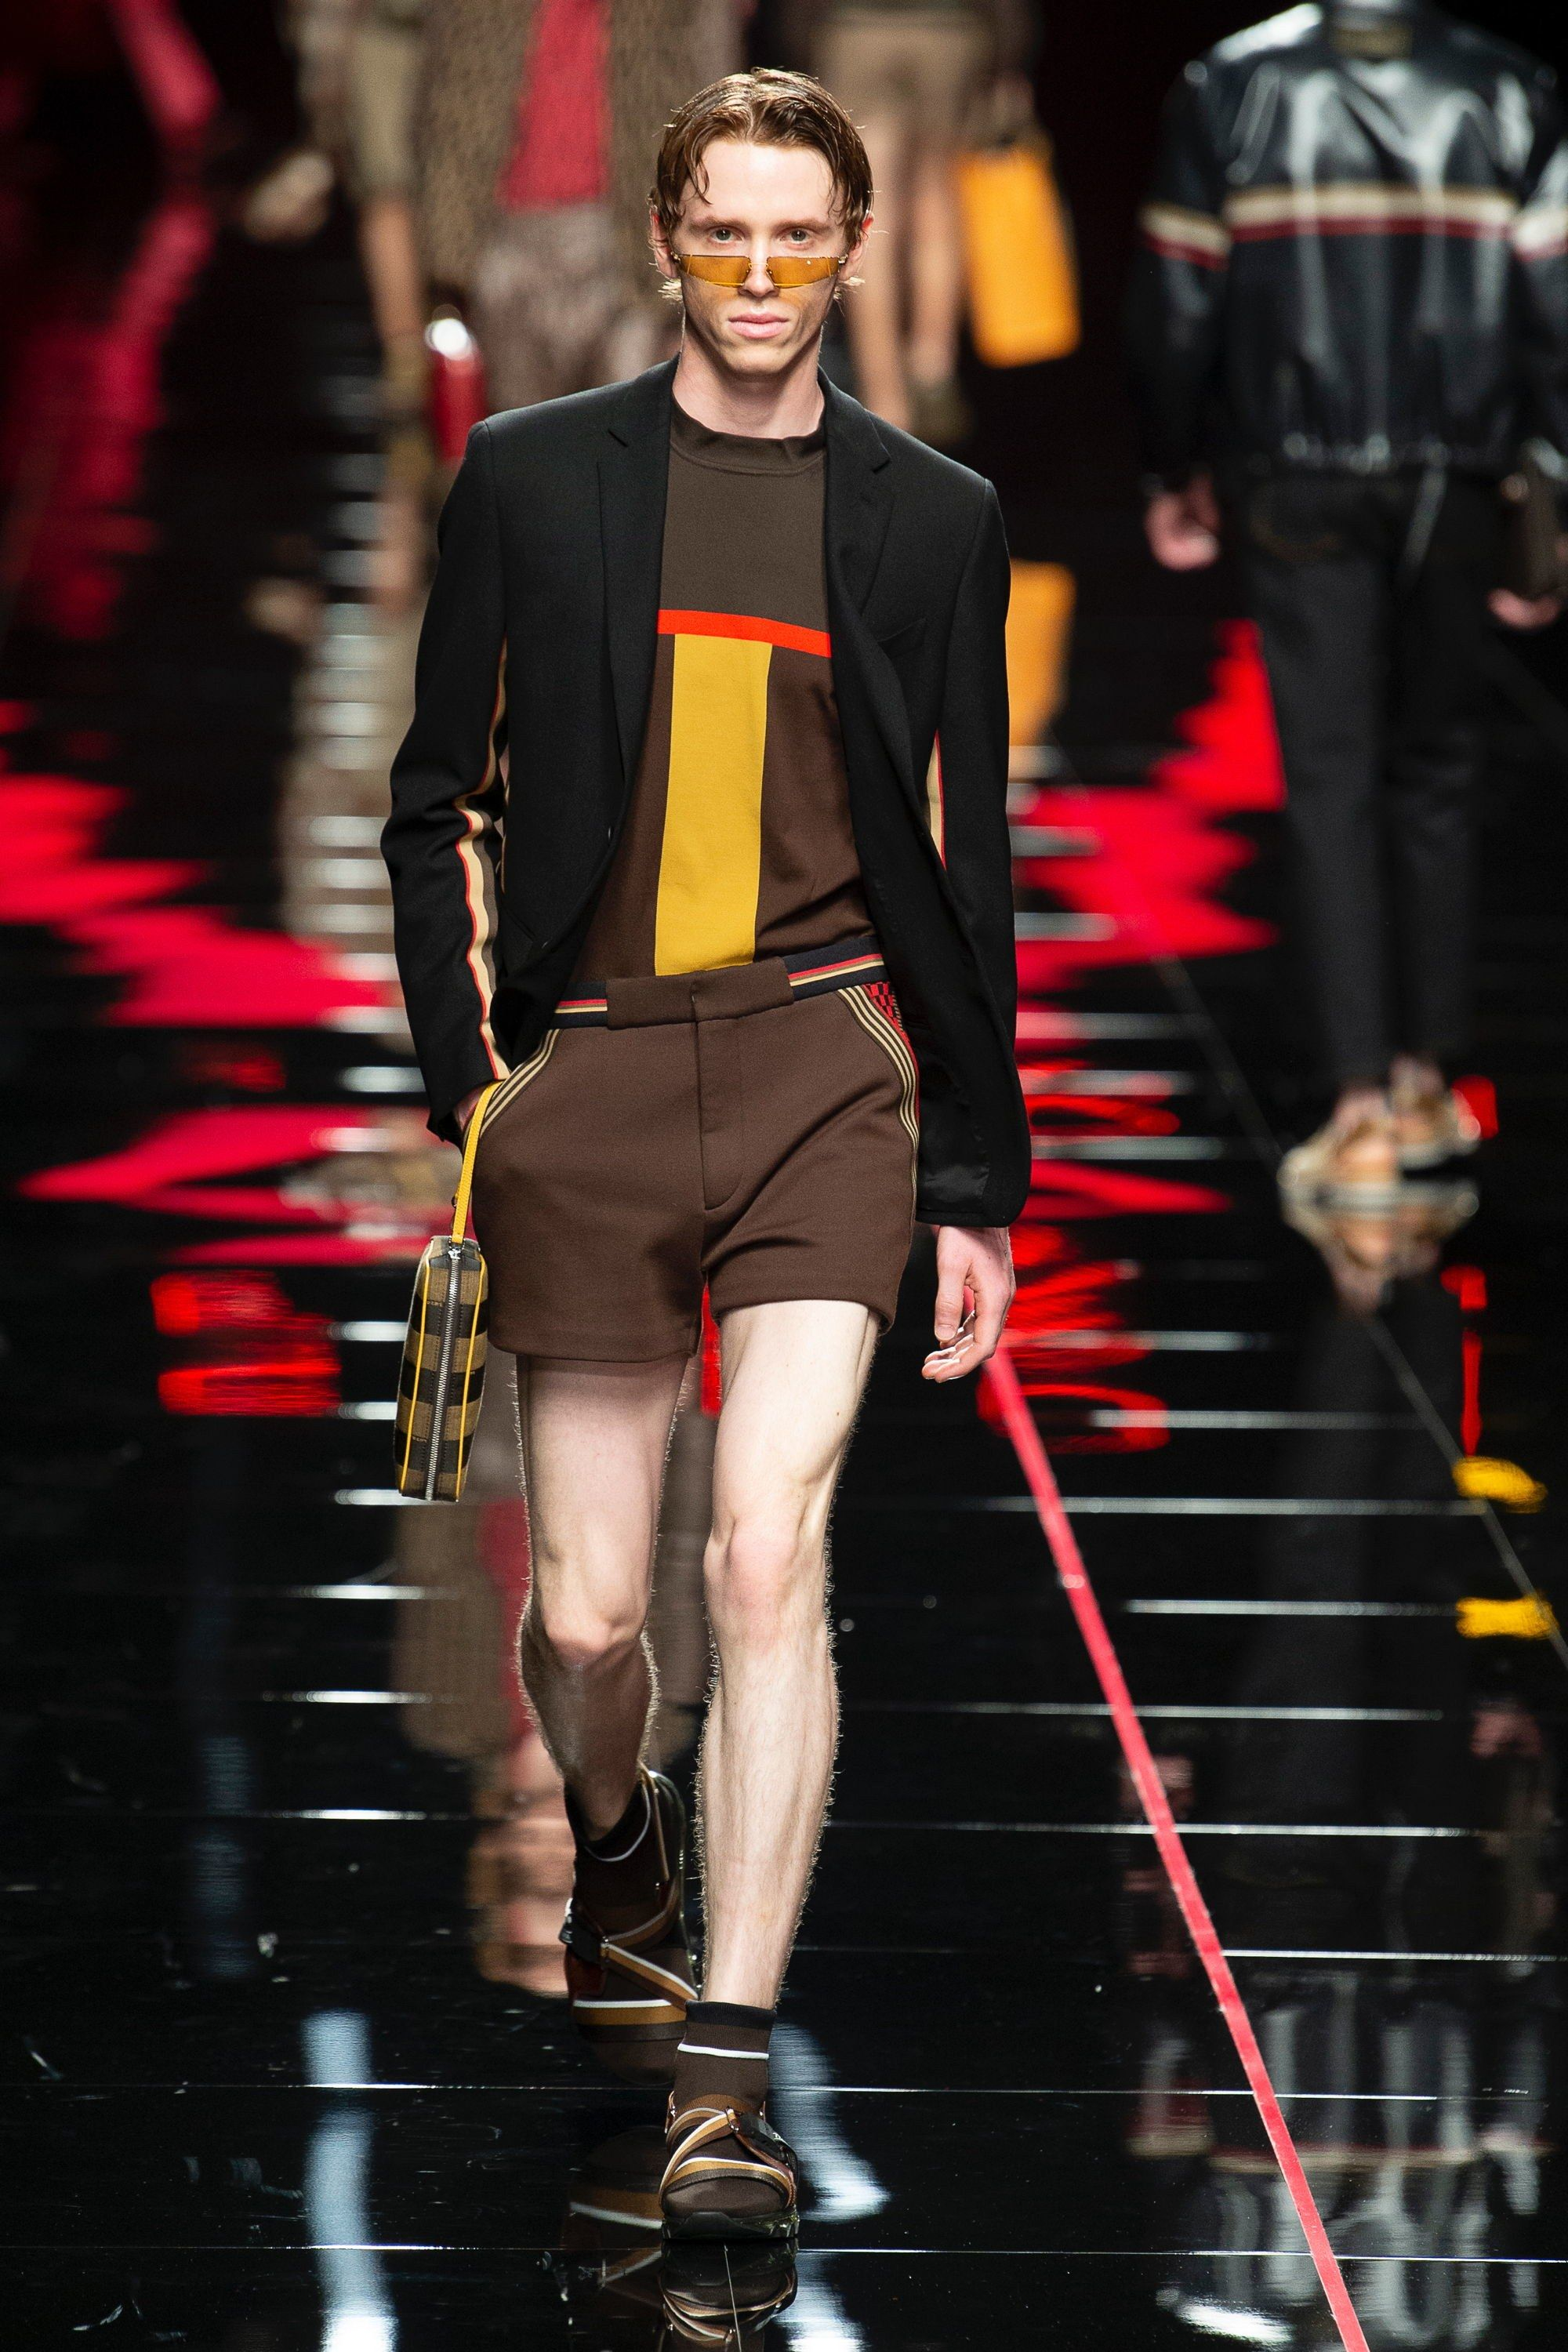 2fc5f13a2eea Fendi Spring 2019 Menswear Fashion Show   Wear Design S S   Menswear ...